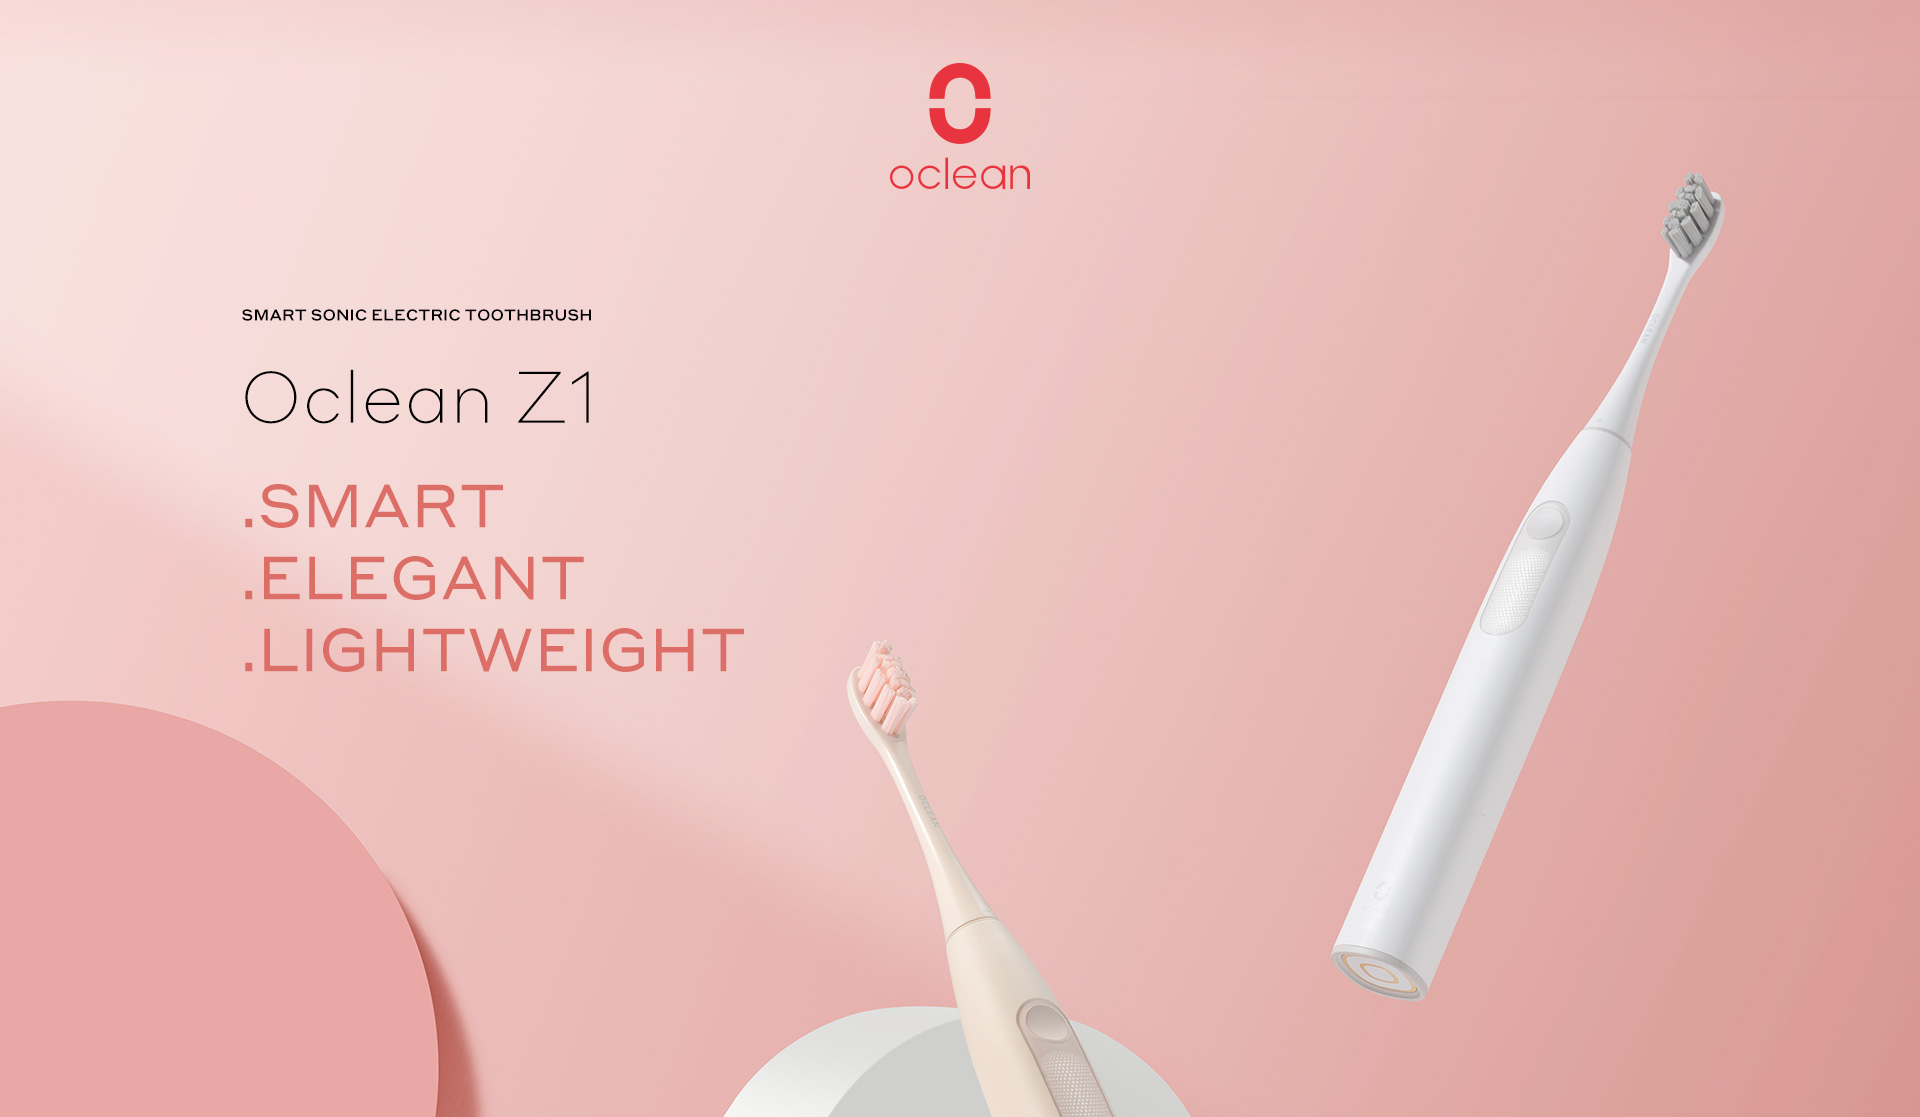 Oclean Z1 smart elegant lightweight